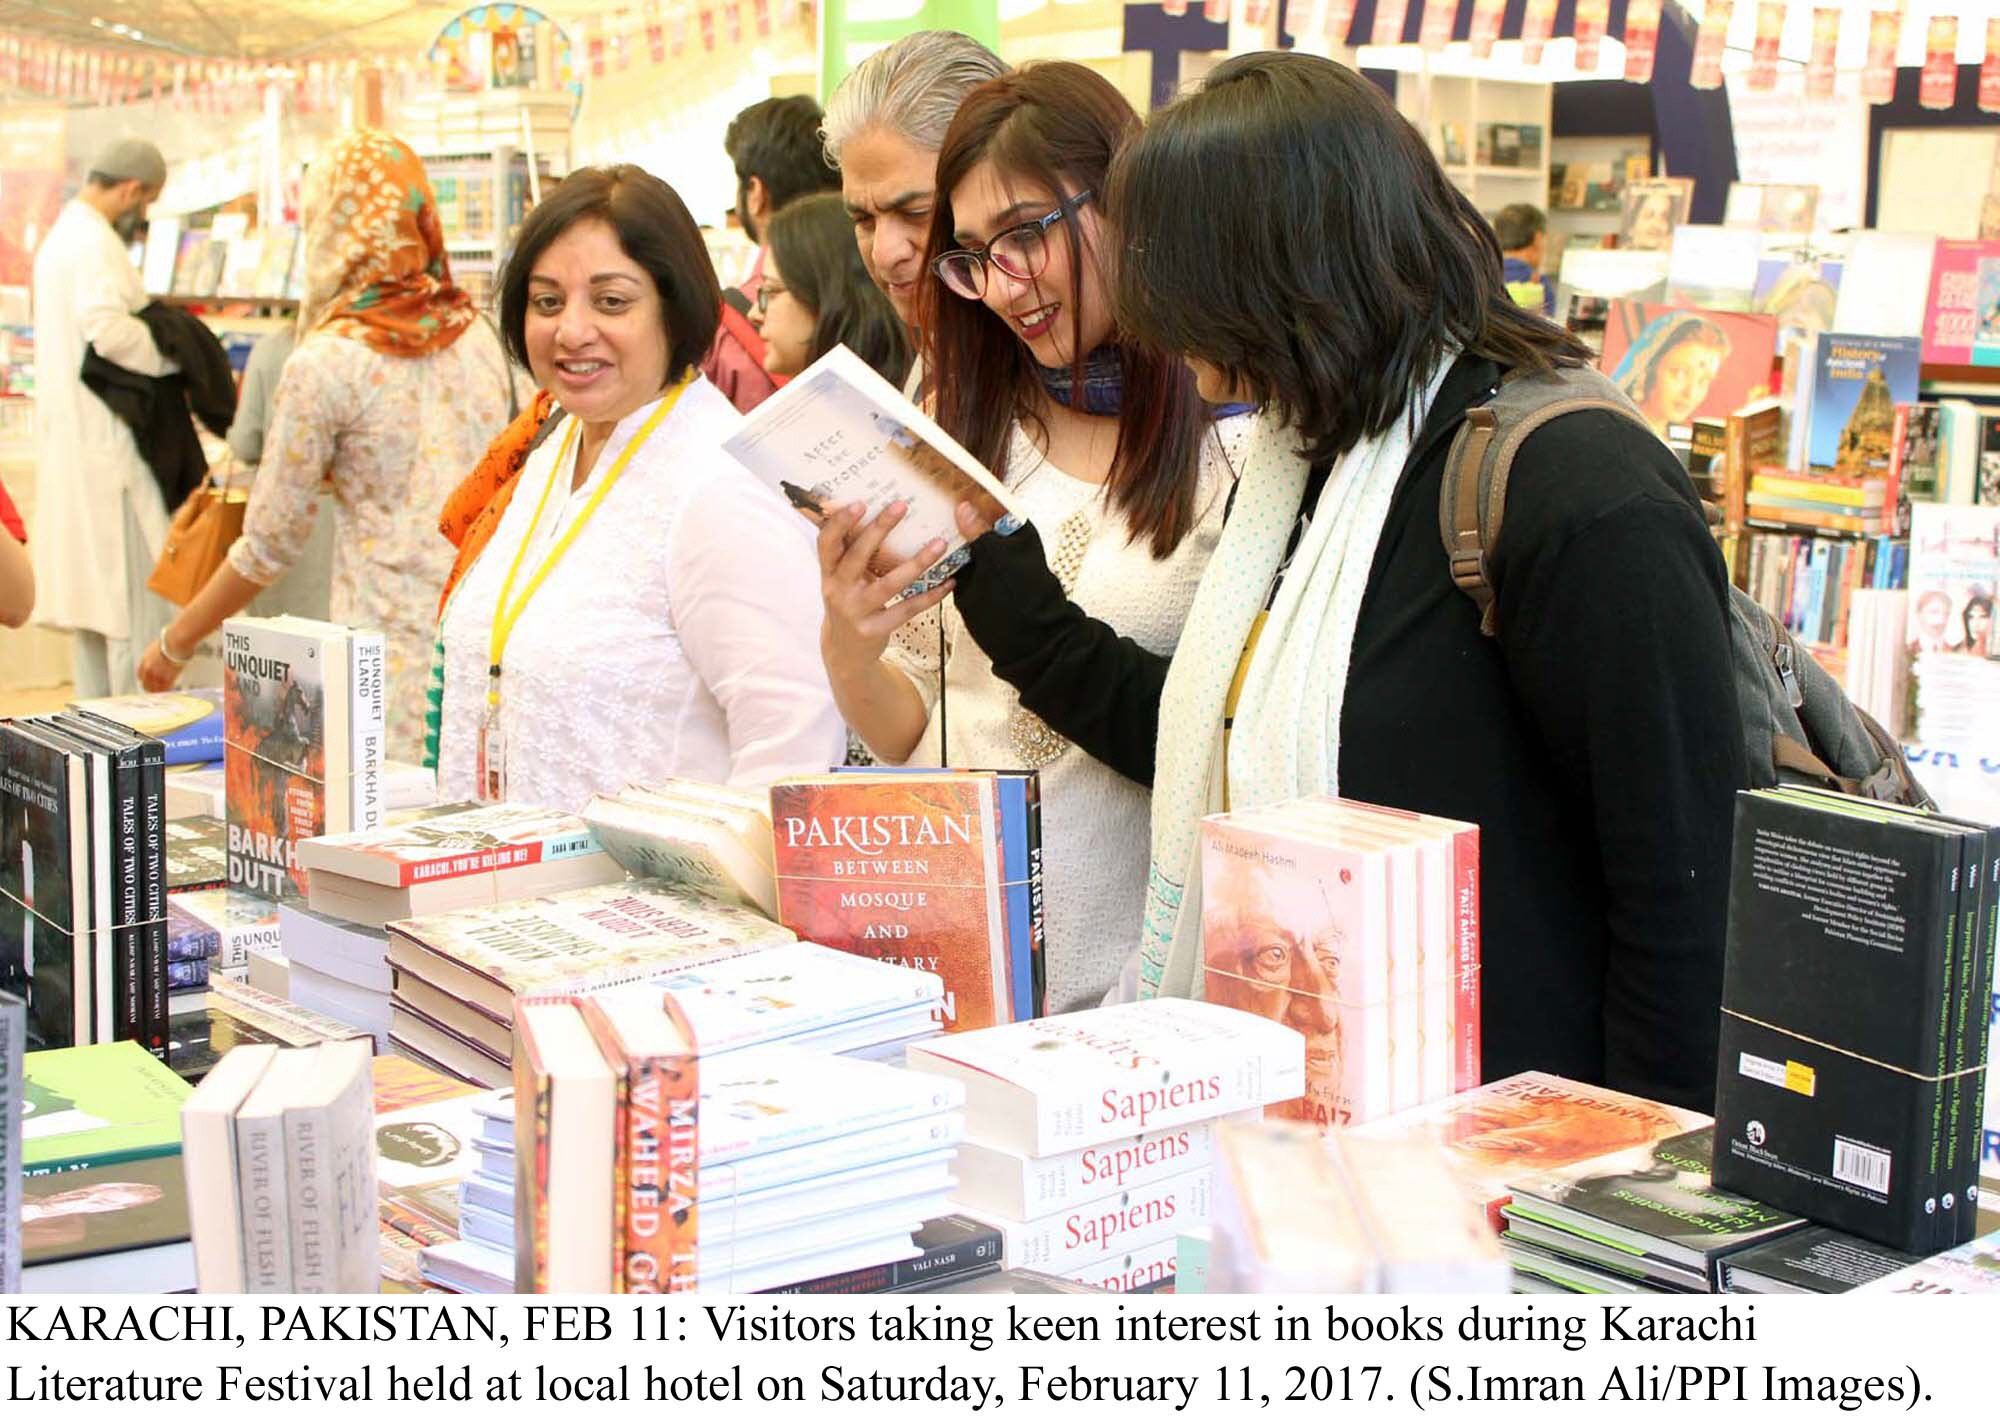 visitors taking keen interest in books during karachi literature festival photo ppi